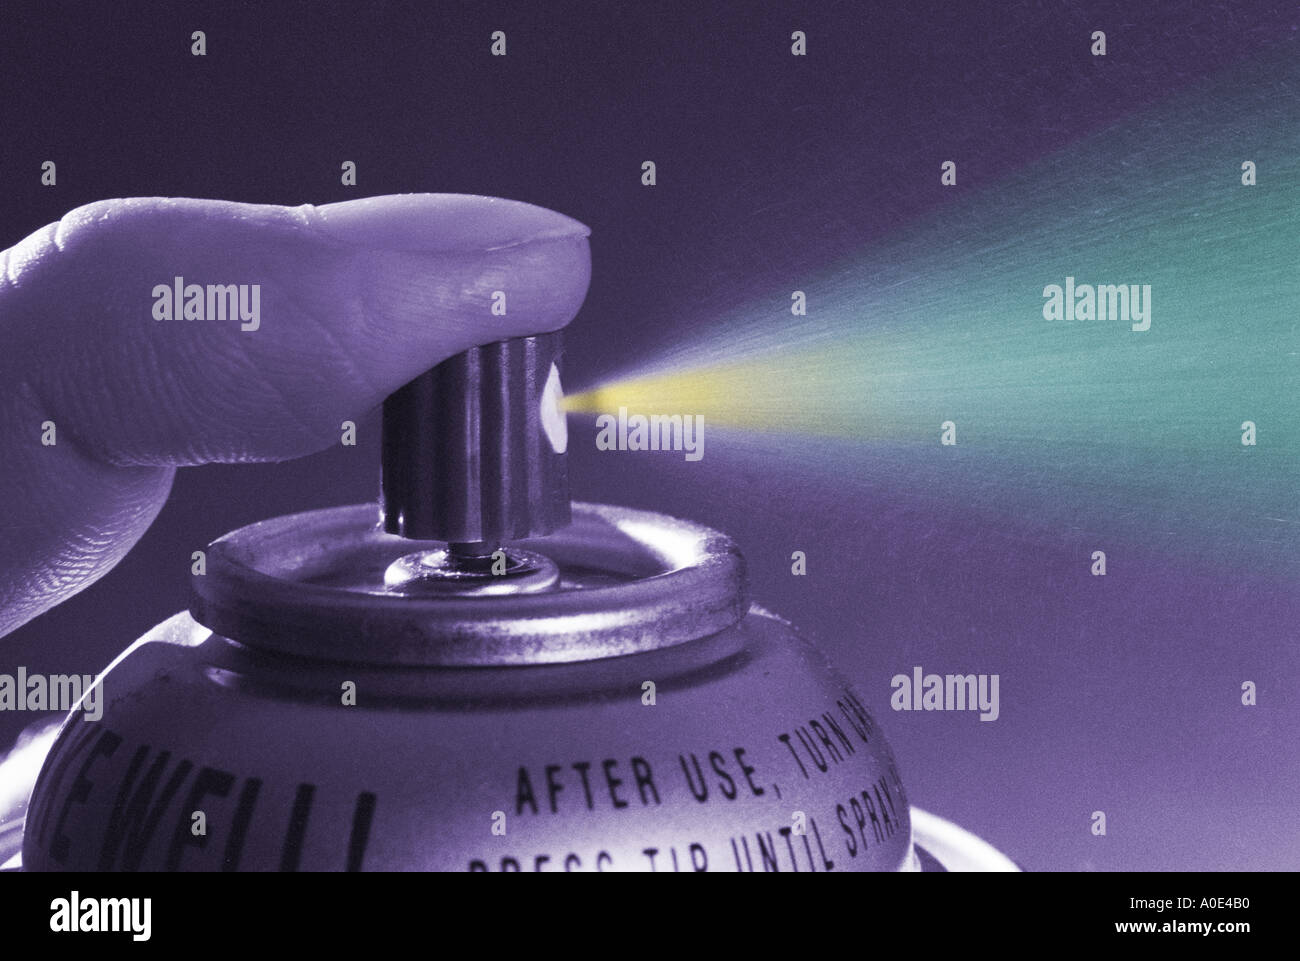 aerosol spray can being used pollution concept - Stock Image